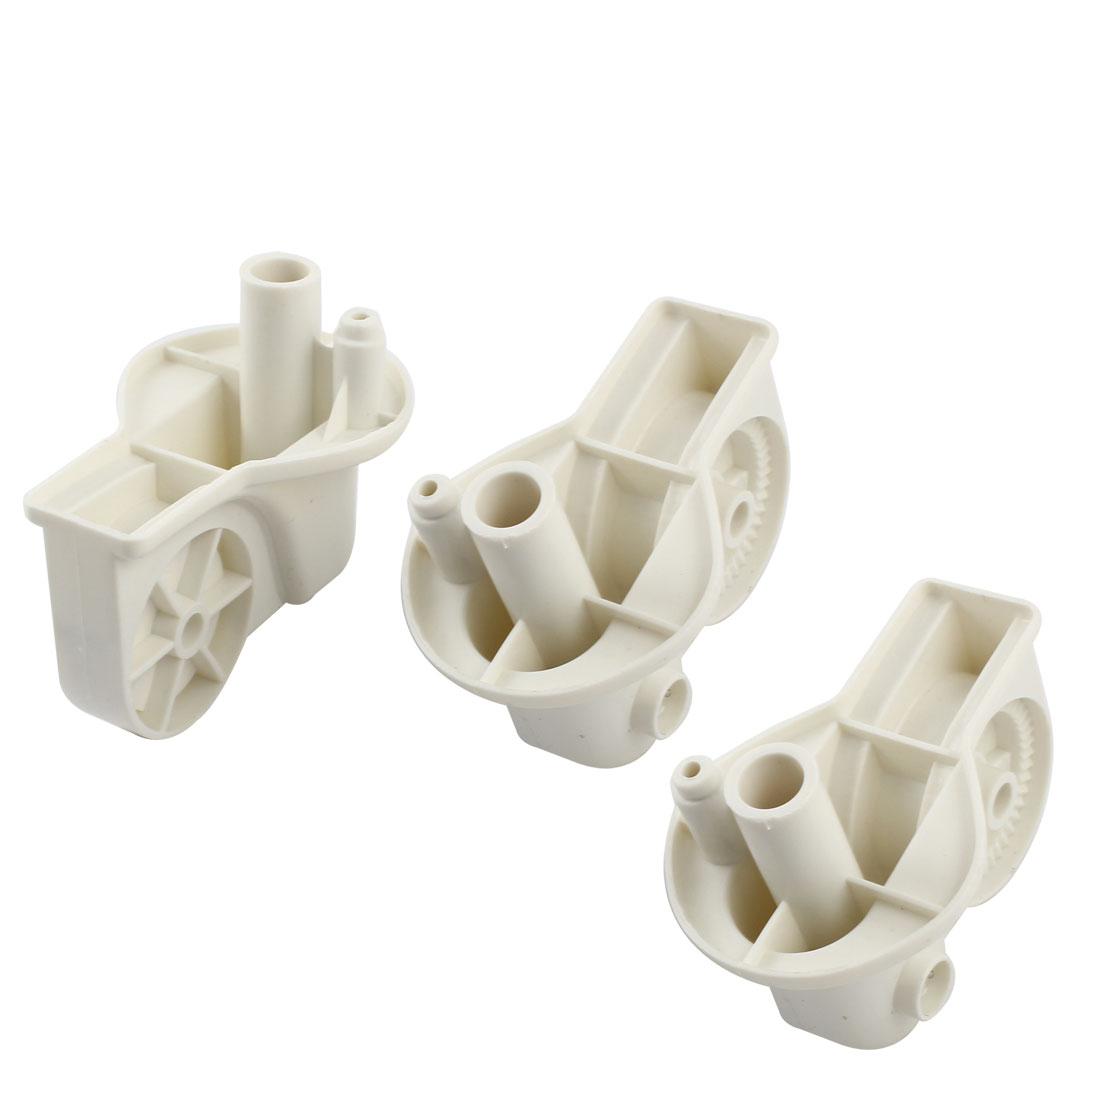 3PCS White Plastic Electric Fan Elbow Connectors 83mm x 55mm x 77mm